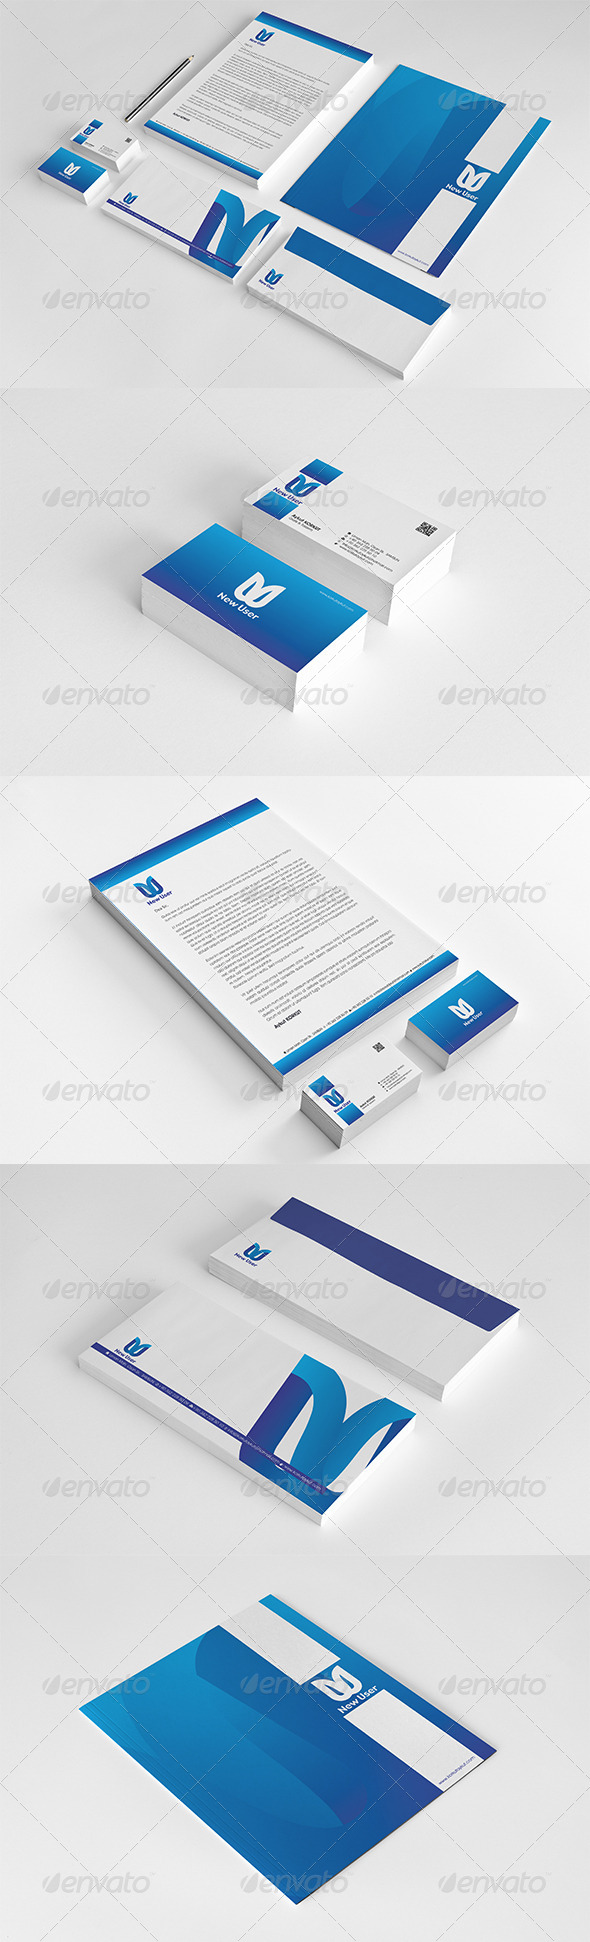 GraphicRiver New User Corporate Identity Package 6244499